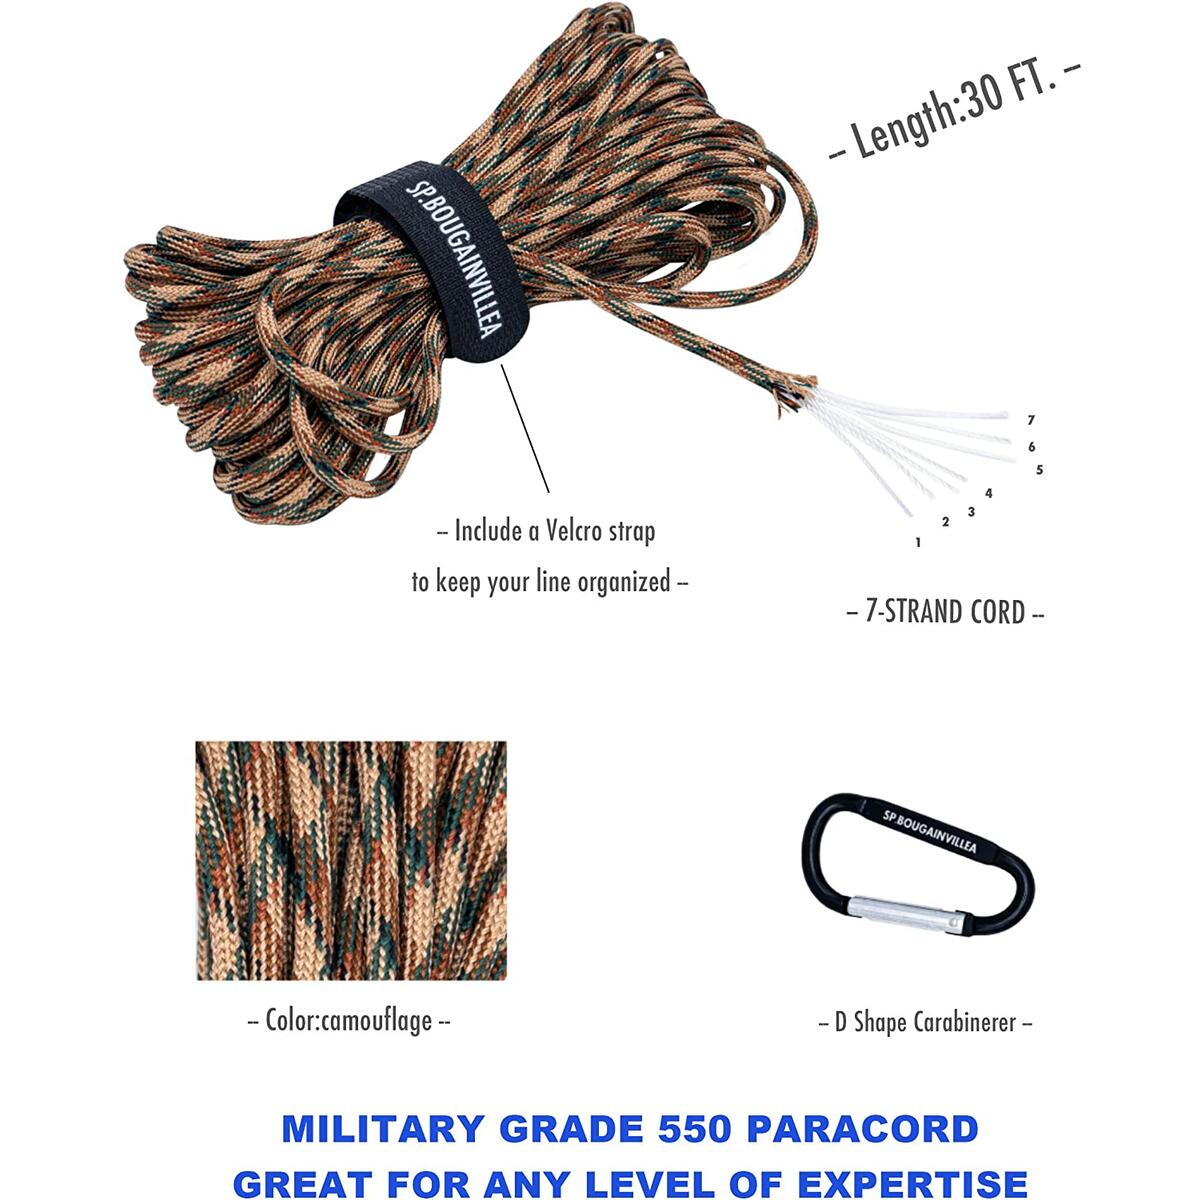 SP.B|Pocket Chainsaw with Paracord 550 Camo Rope and Carabiner |Folding Hand Chainsaw (16teeth-36inch) for Wood Cutting |Portable Survival Kit Fit For Camping Backpack Hiking Garden Work